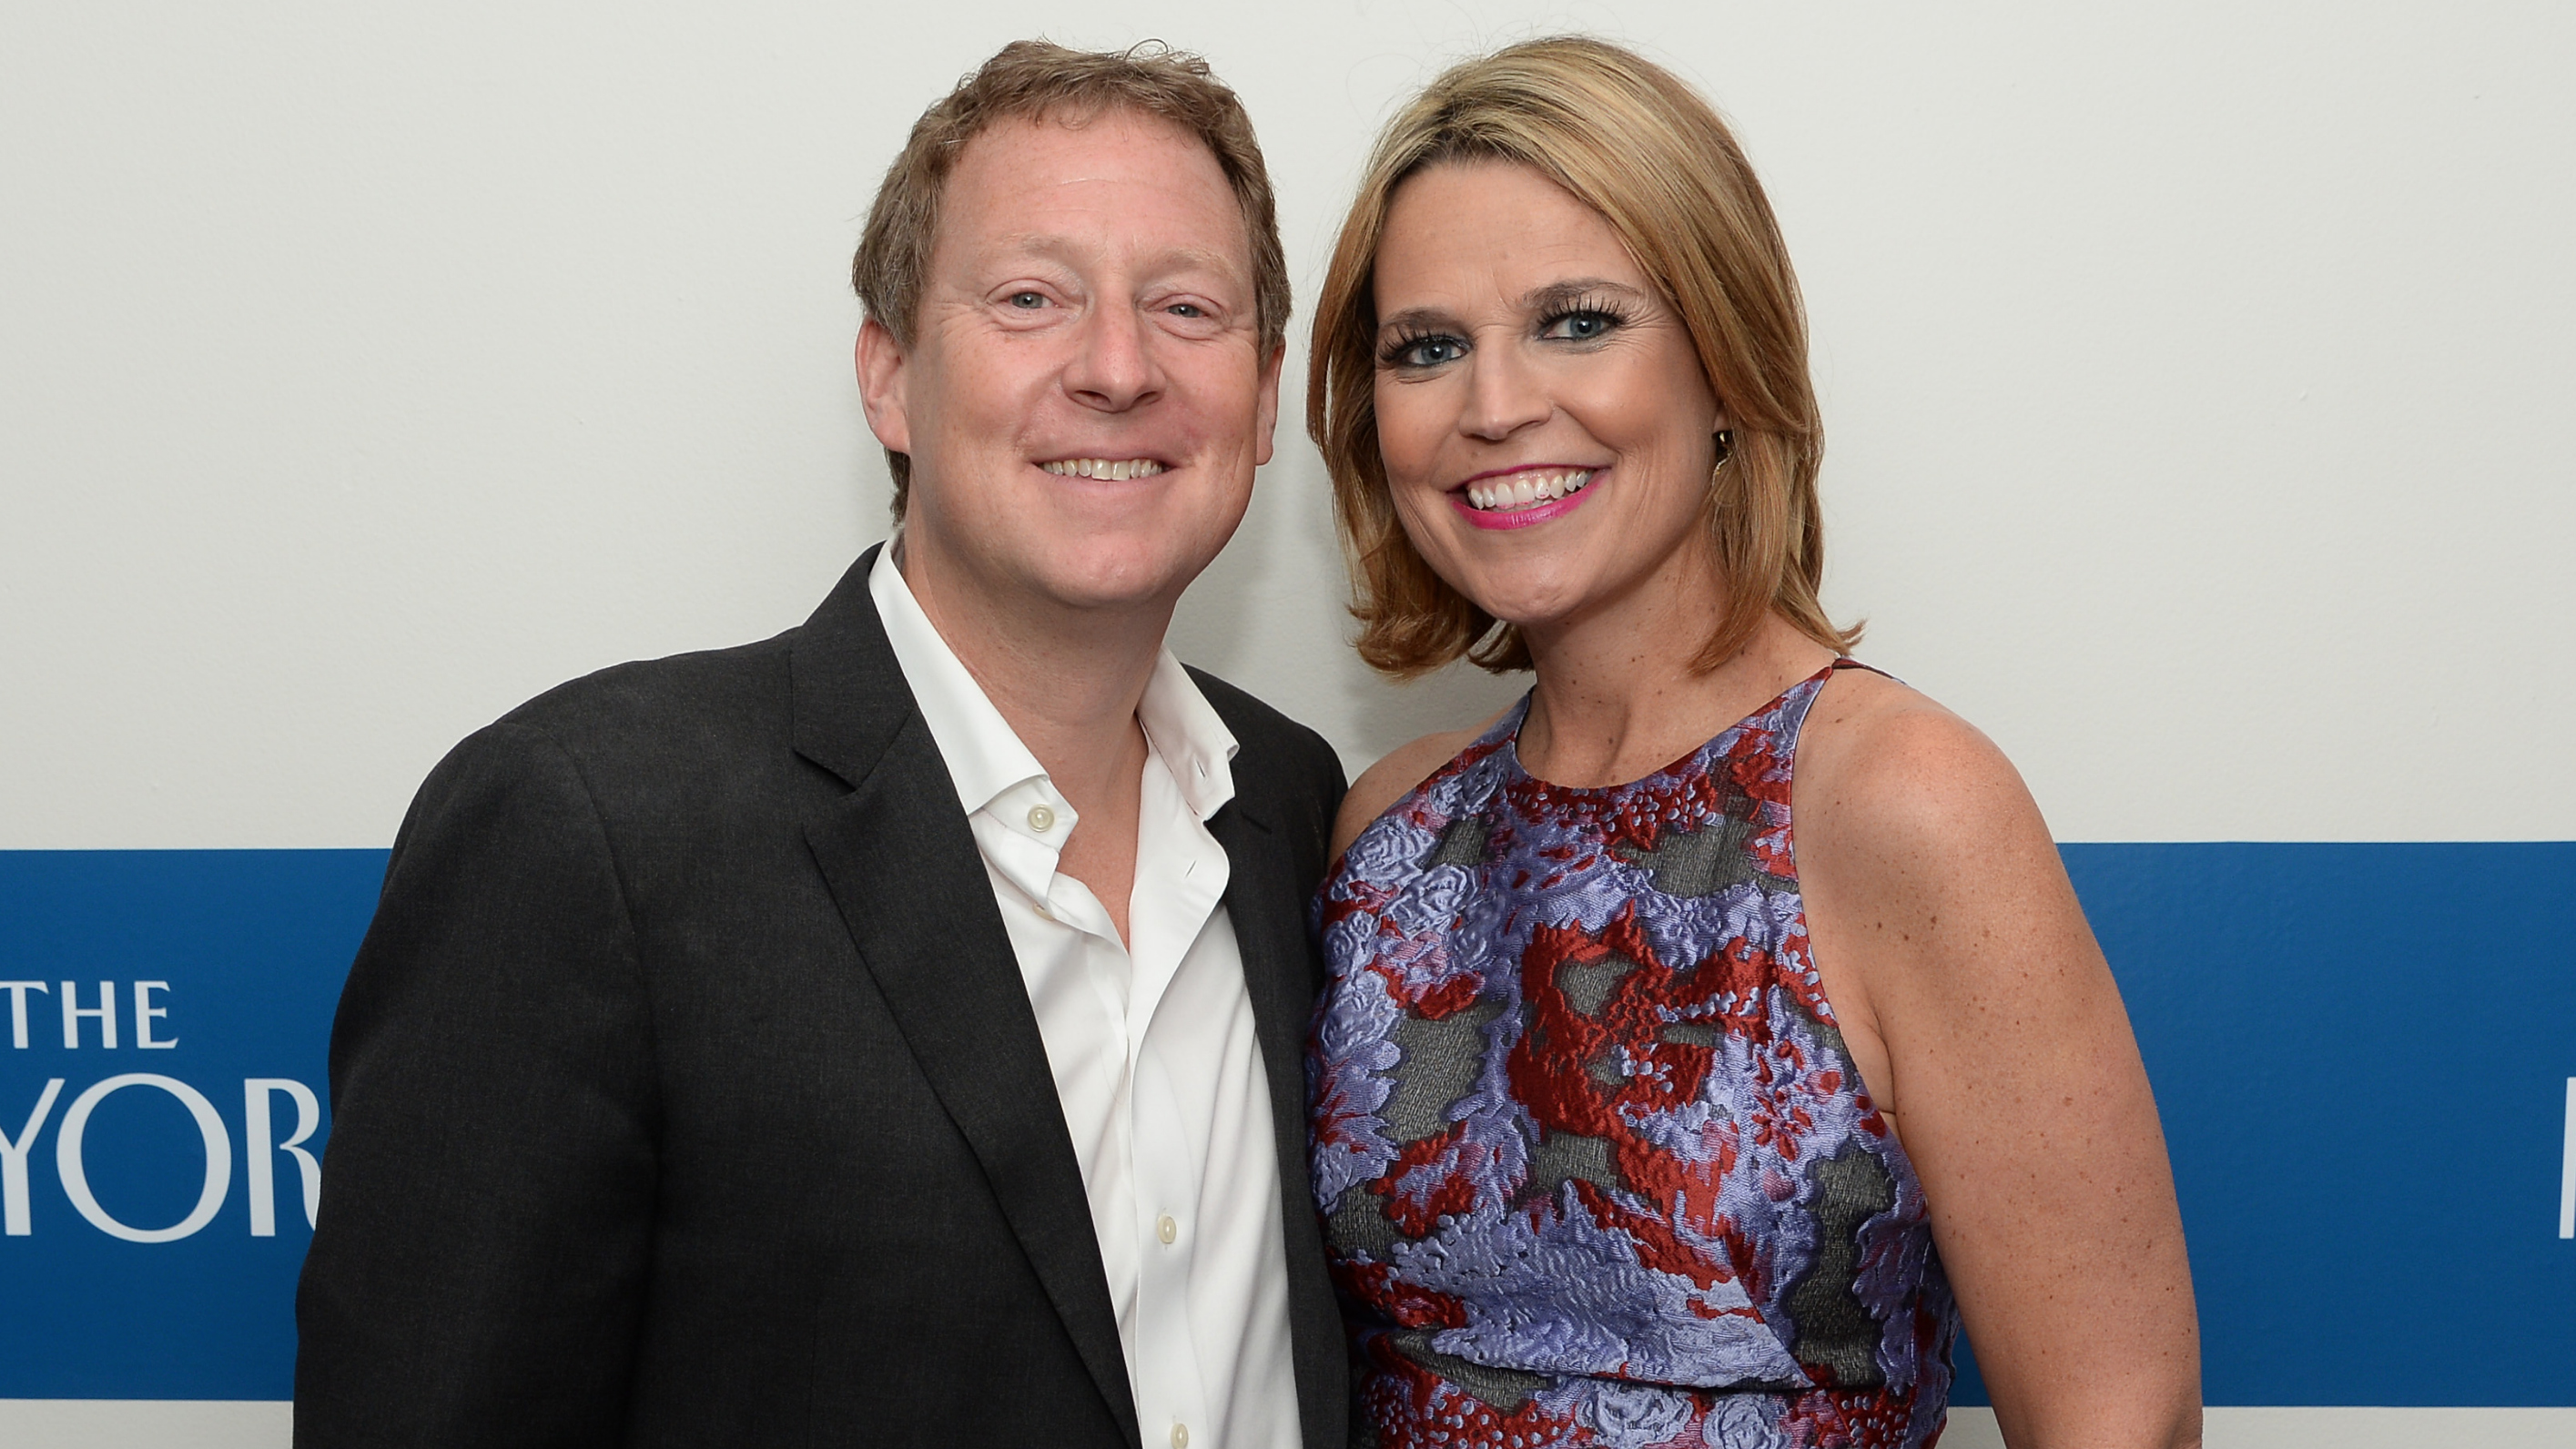 Savannah Guthrie Shares Pics With Her Husband From 10 Years Ago